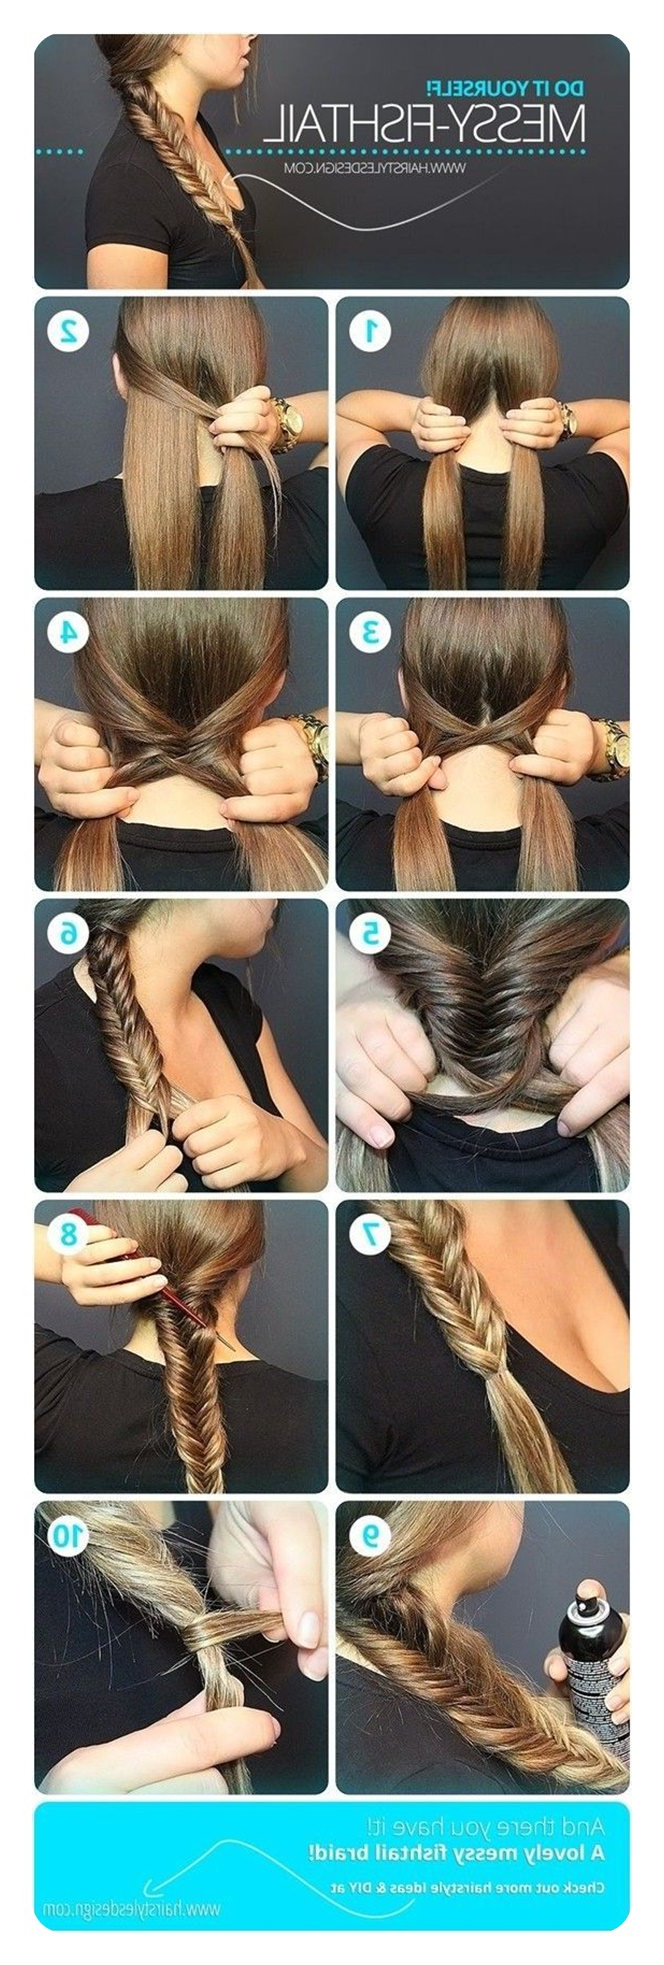 104 Fishtail Braids Hairstyles That Turn Heads With Recent Messy Fishtail Hairstyles For Oblong Faces (View 1 of 20)